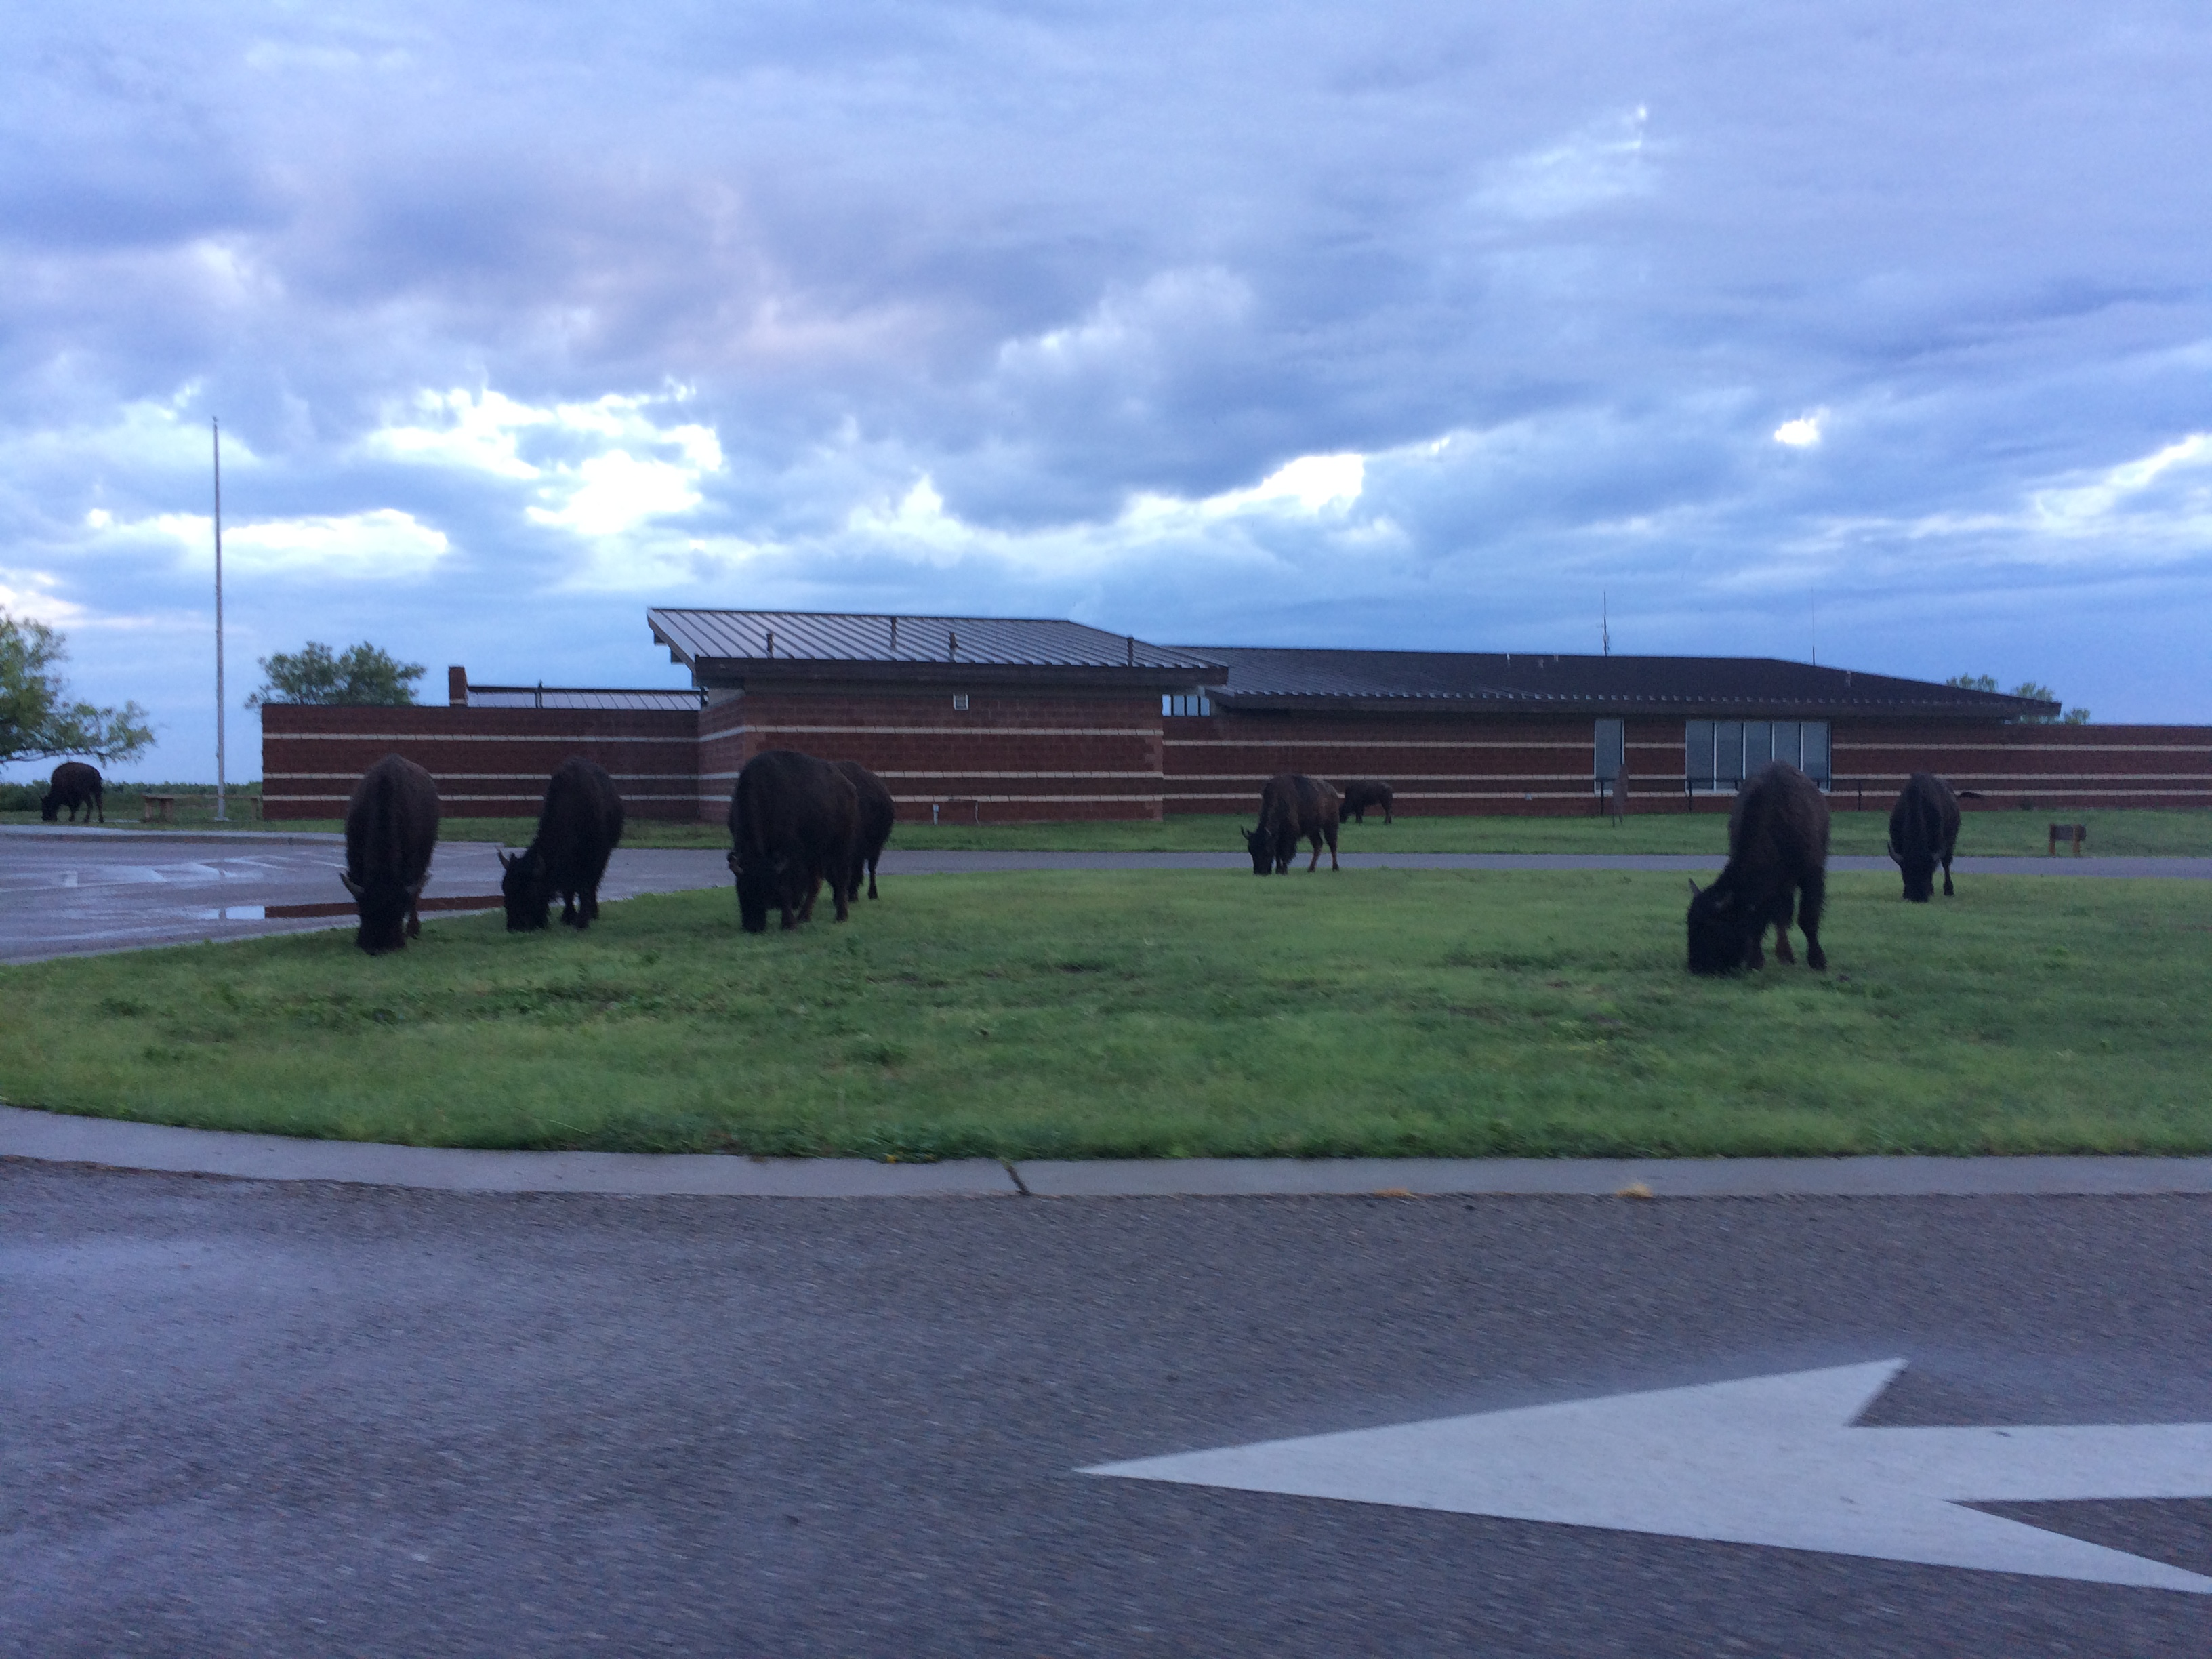 Texas' official bison herd at Caprock Canyons State Park near Quitaque, TX. Photo by Clay Duda.